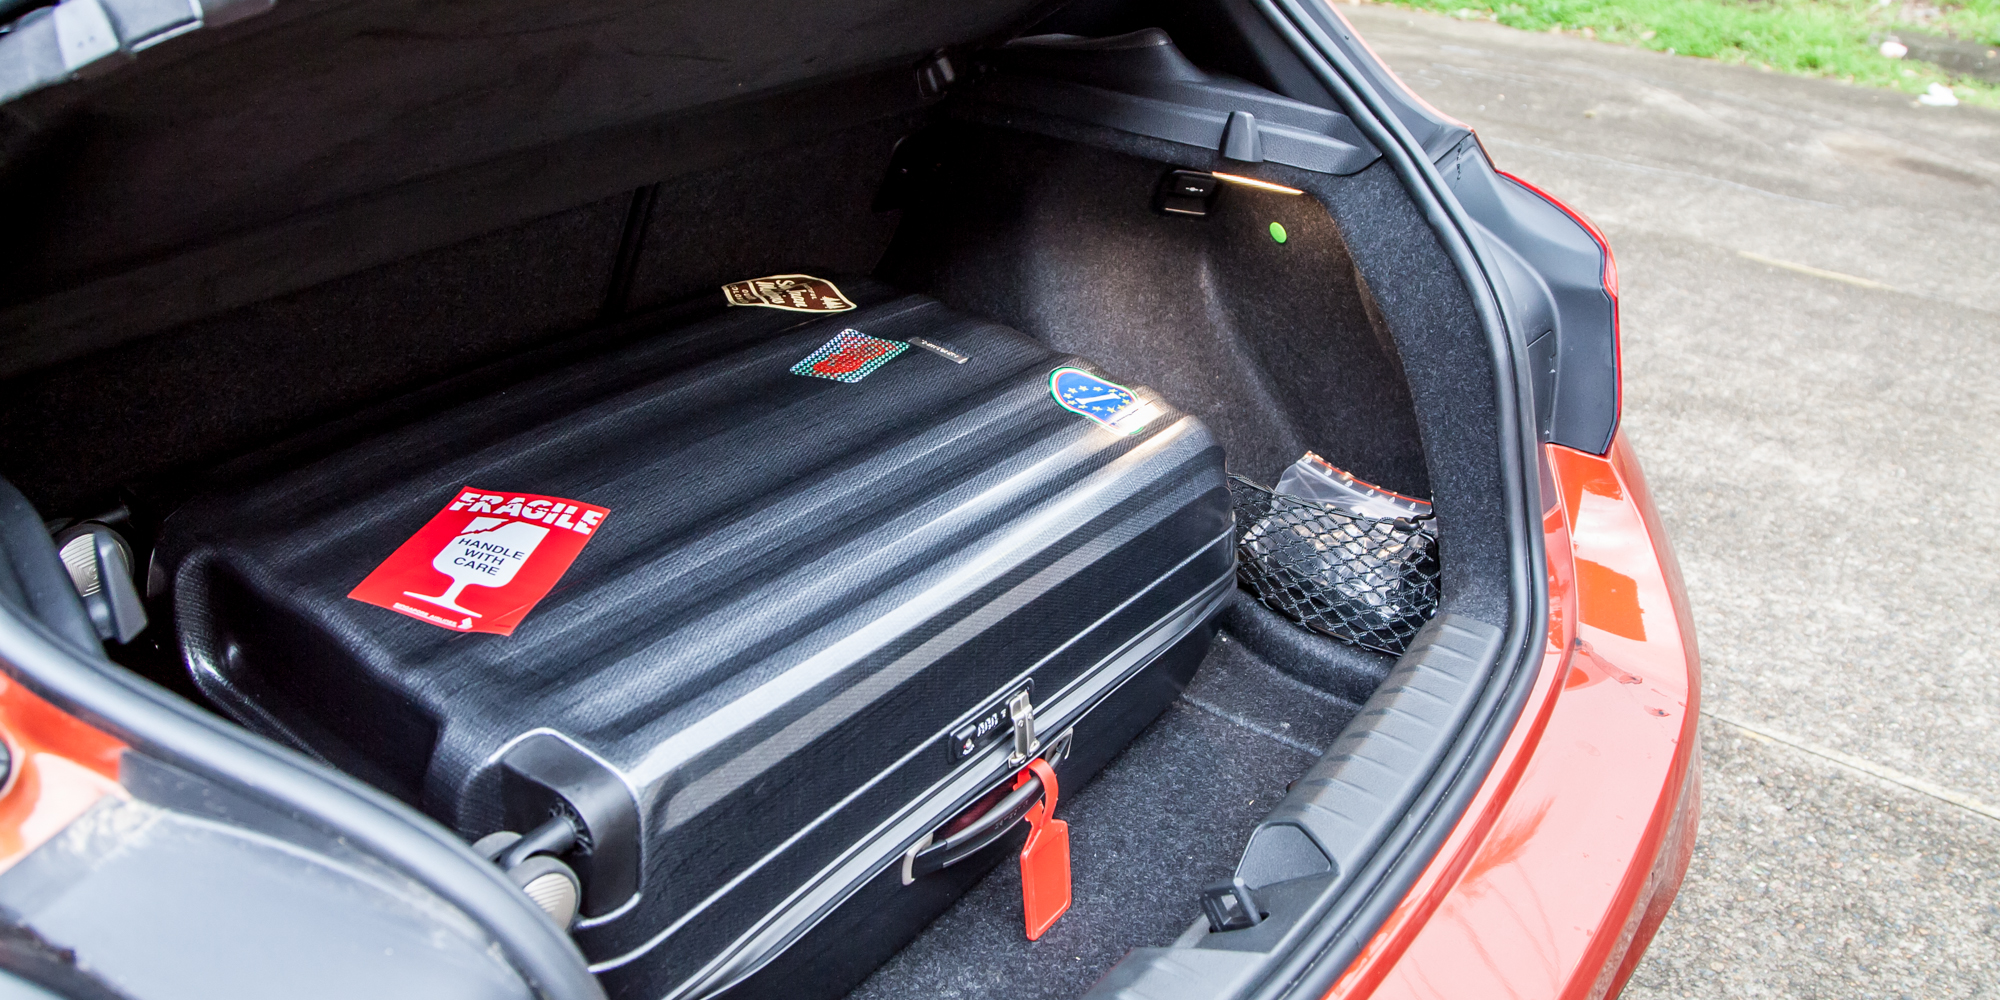 2015 Bmw 125i Trunk (Photo 14 of 15)